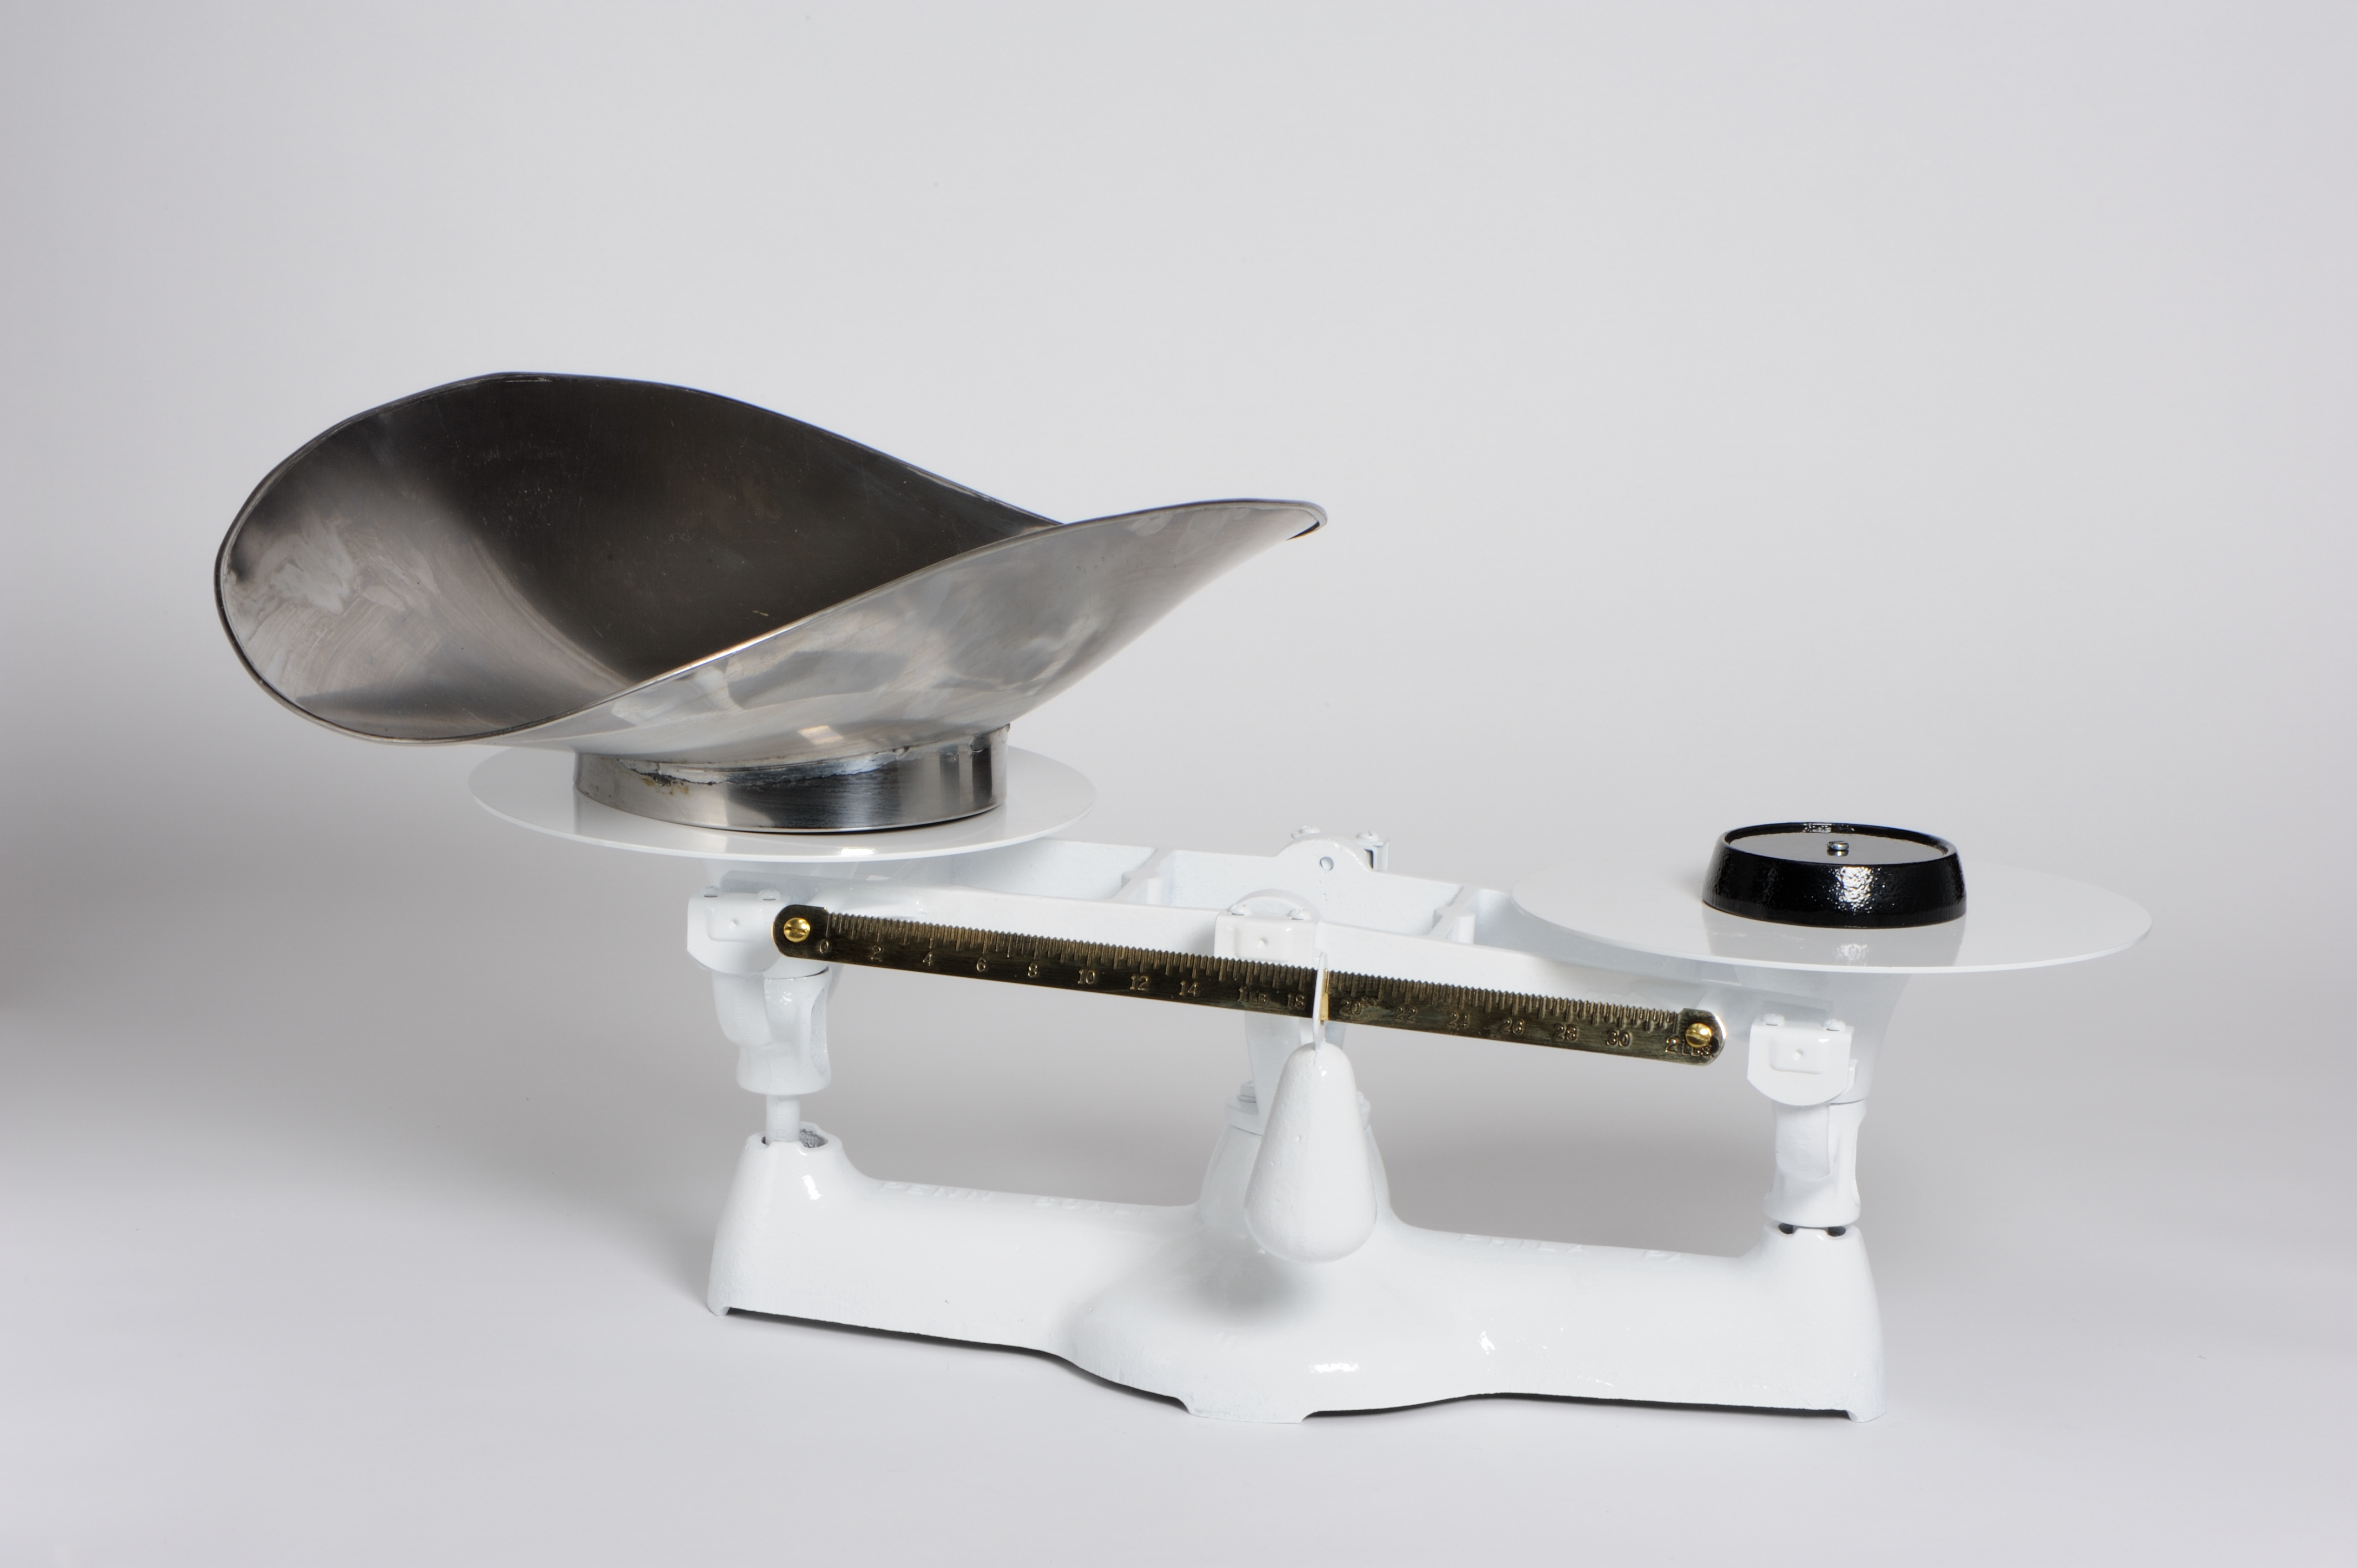 Penn Scale 1401 SS 16 Pound Bakers Scale with SS Scoop